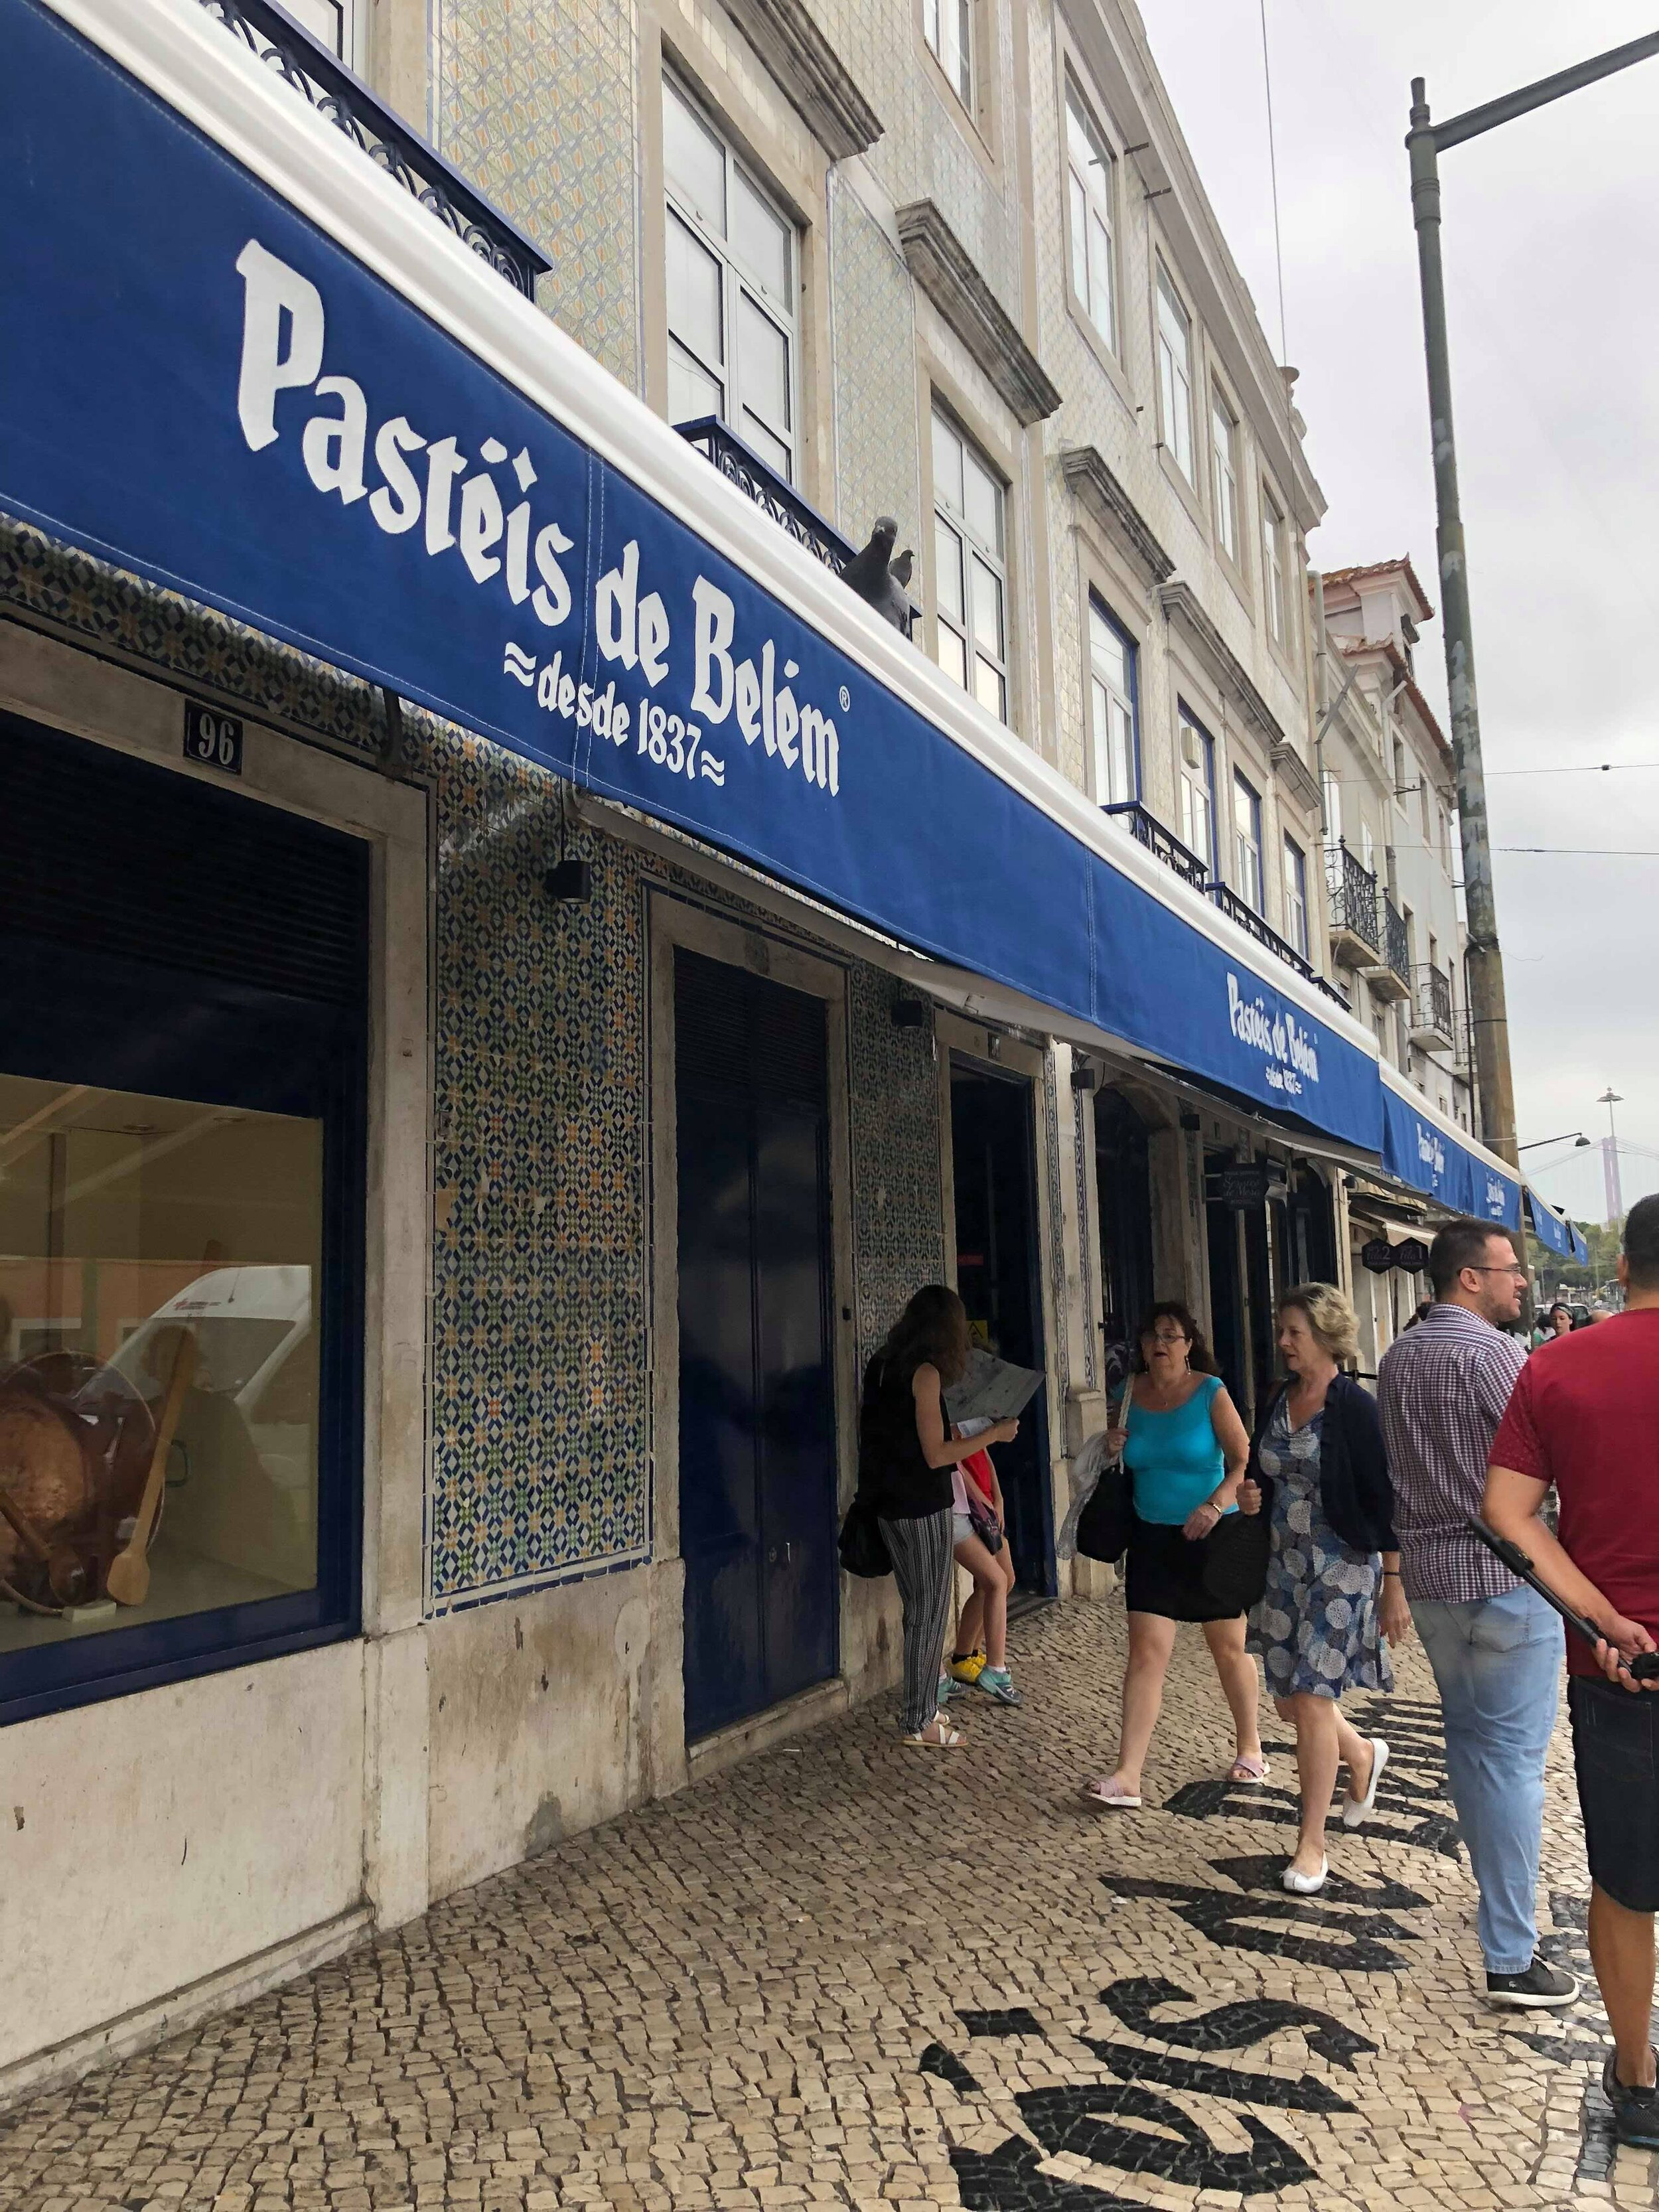 Pastéis de Belém - Home of the OriginalCommonly credited with the invention of the iconic egg tart, Pastéis de Belem is frequently hailed as the origin where they are first produced. Though somewhat out of the way from Lisbon center, lines can quickly form during peak hours as the monastery and other sites are nearby, so be sure to stop by early (hours are 8AM - 11PM daily).